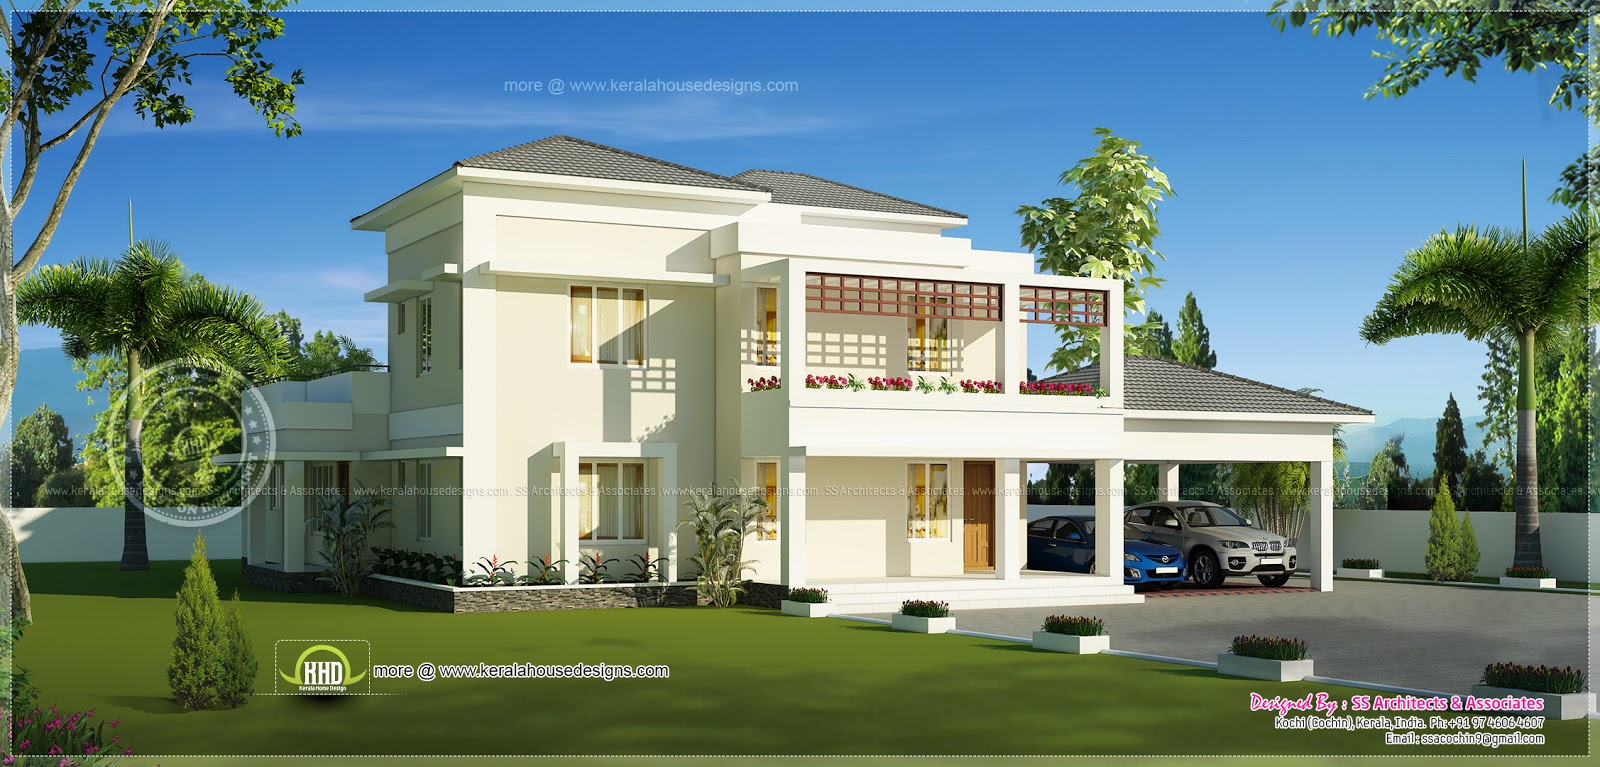 Beautiful double storey modern villa exterior kerala for Two floor house plans in kerala